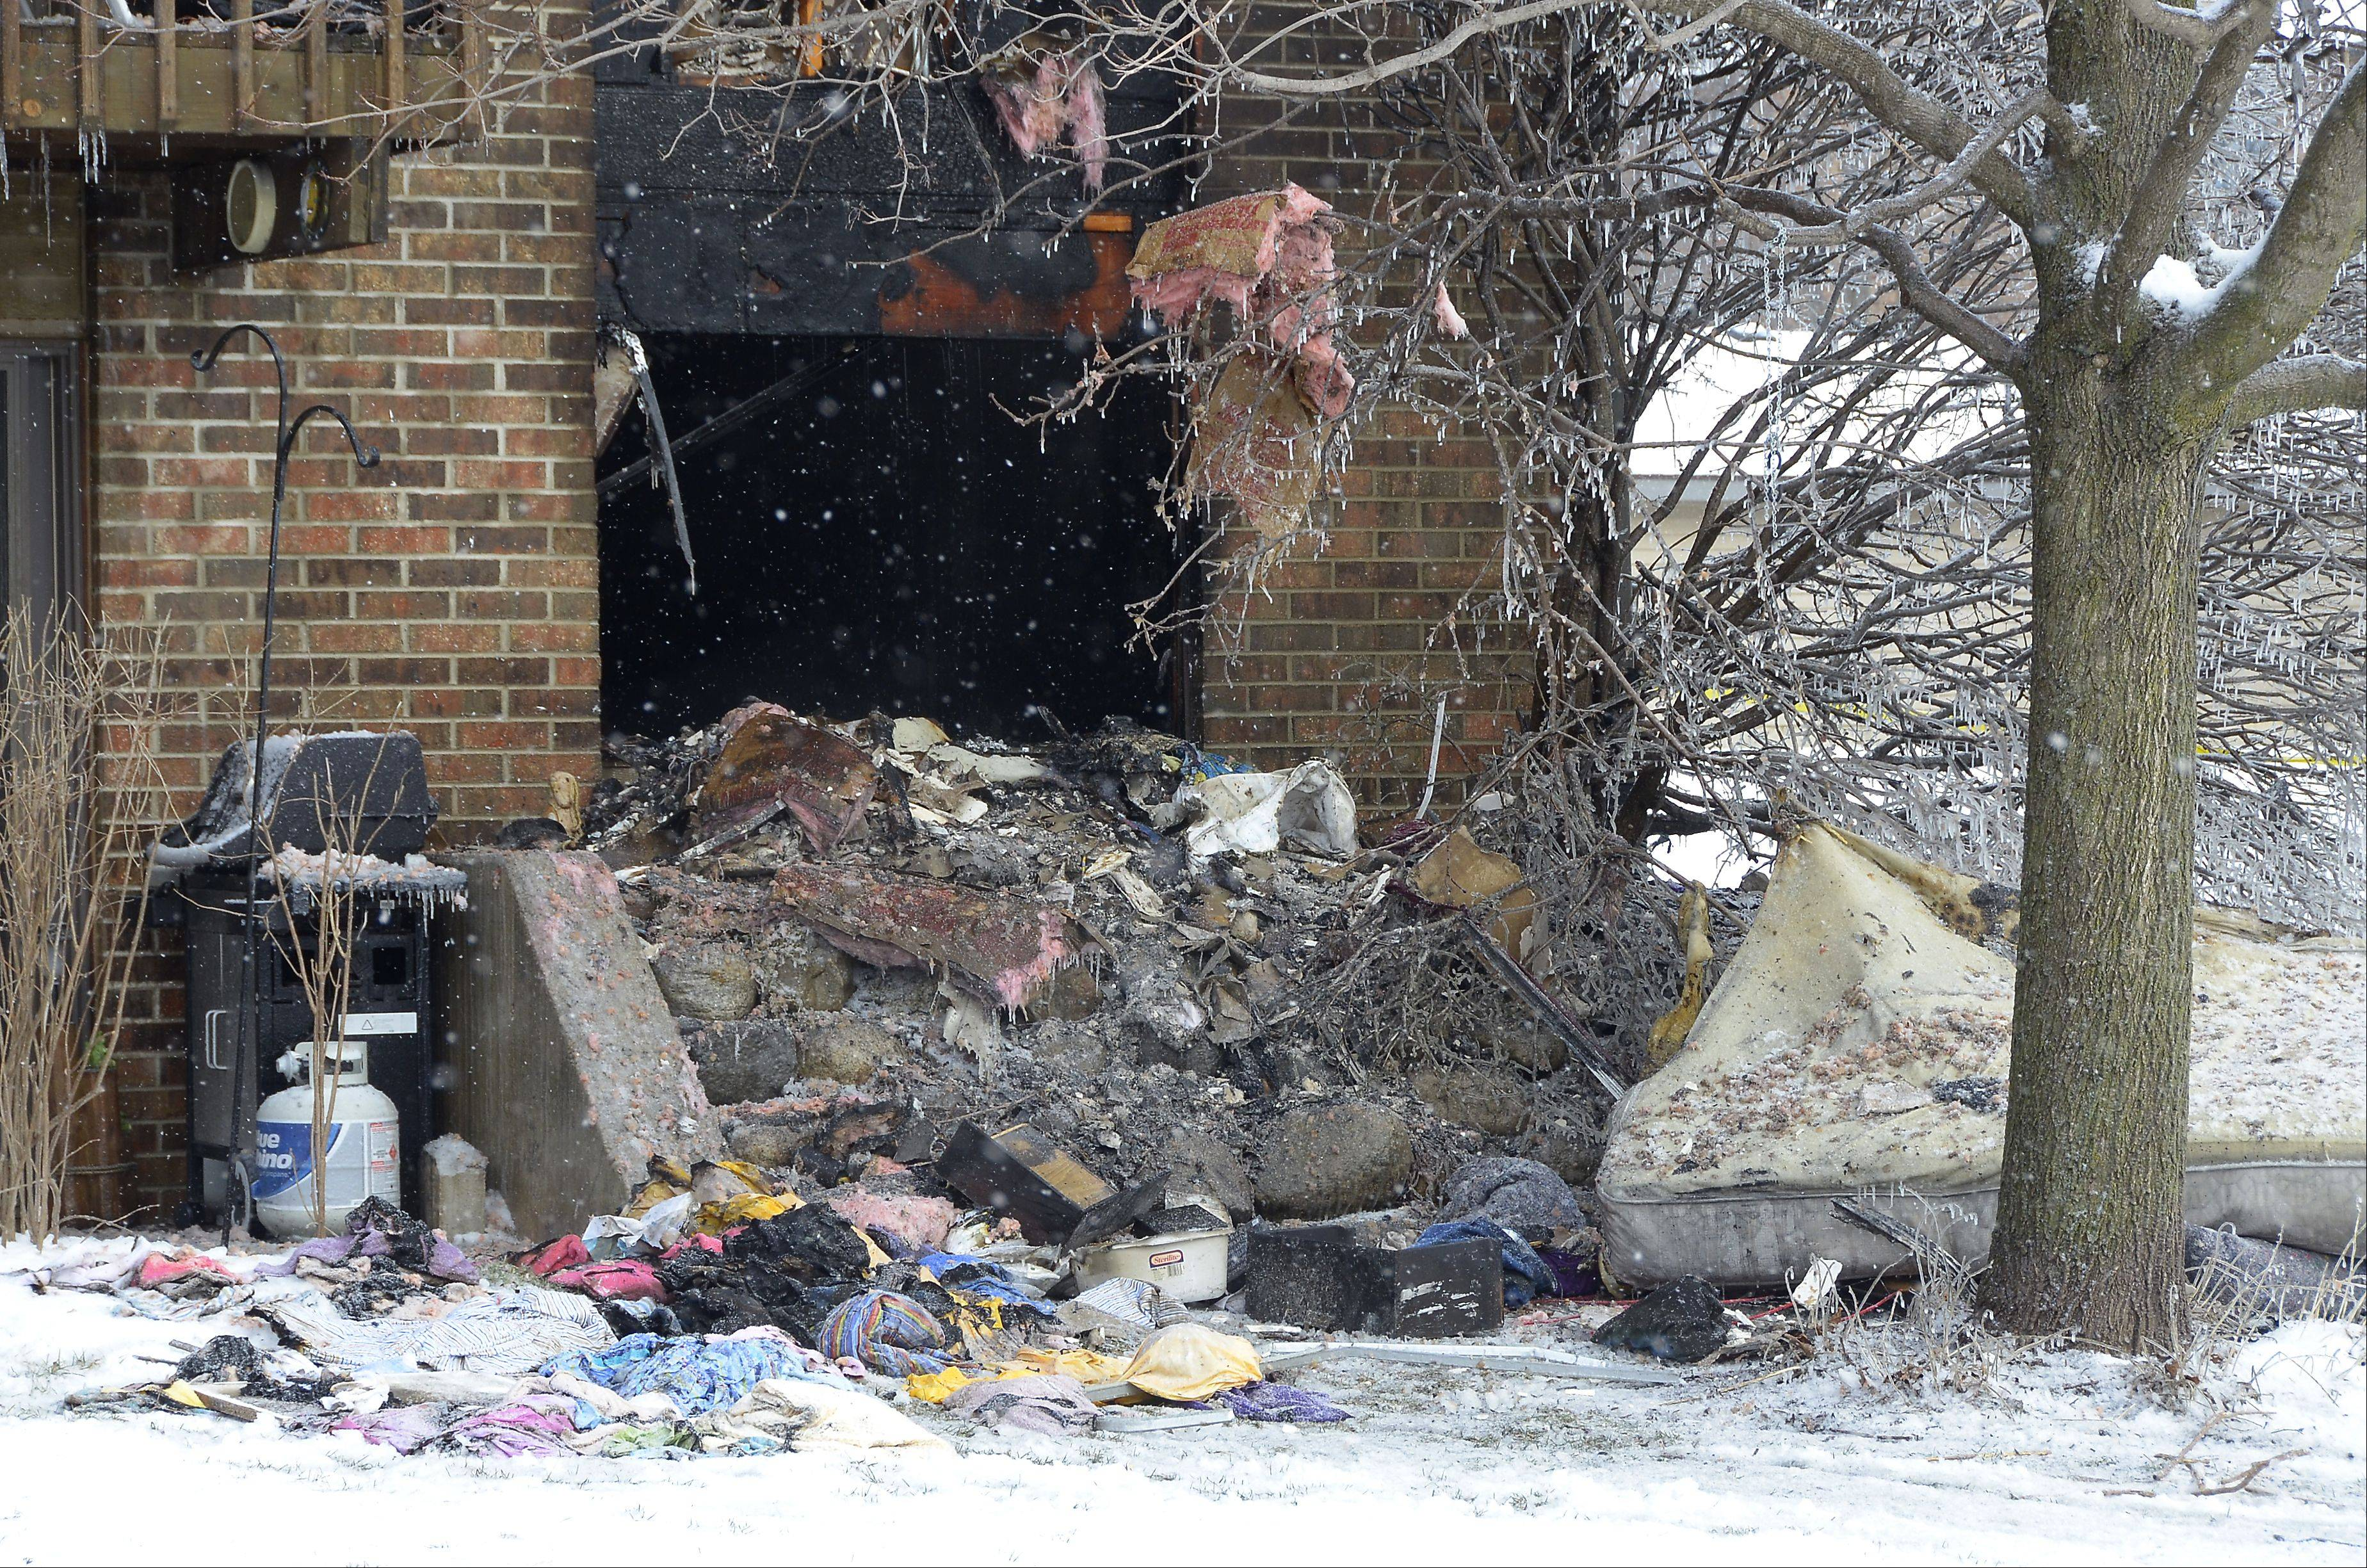 Debris is left at the scene of a fatal apartment fire Sunday morning in the Woodcreek Apartments complex in Huntley. Officials said one man was killed and about a dozen other residents were displaced by the early morning fire.